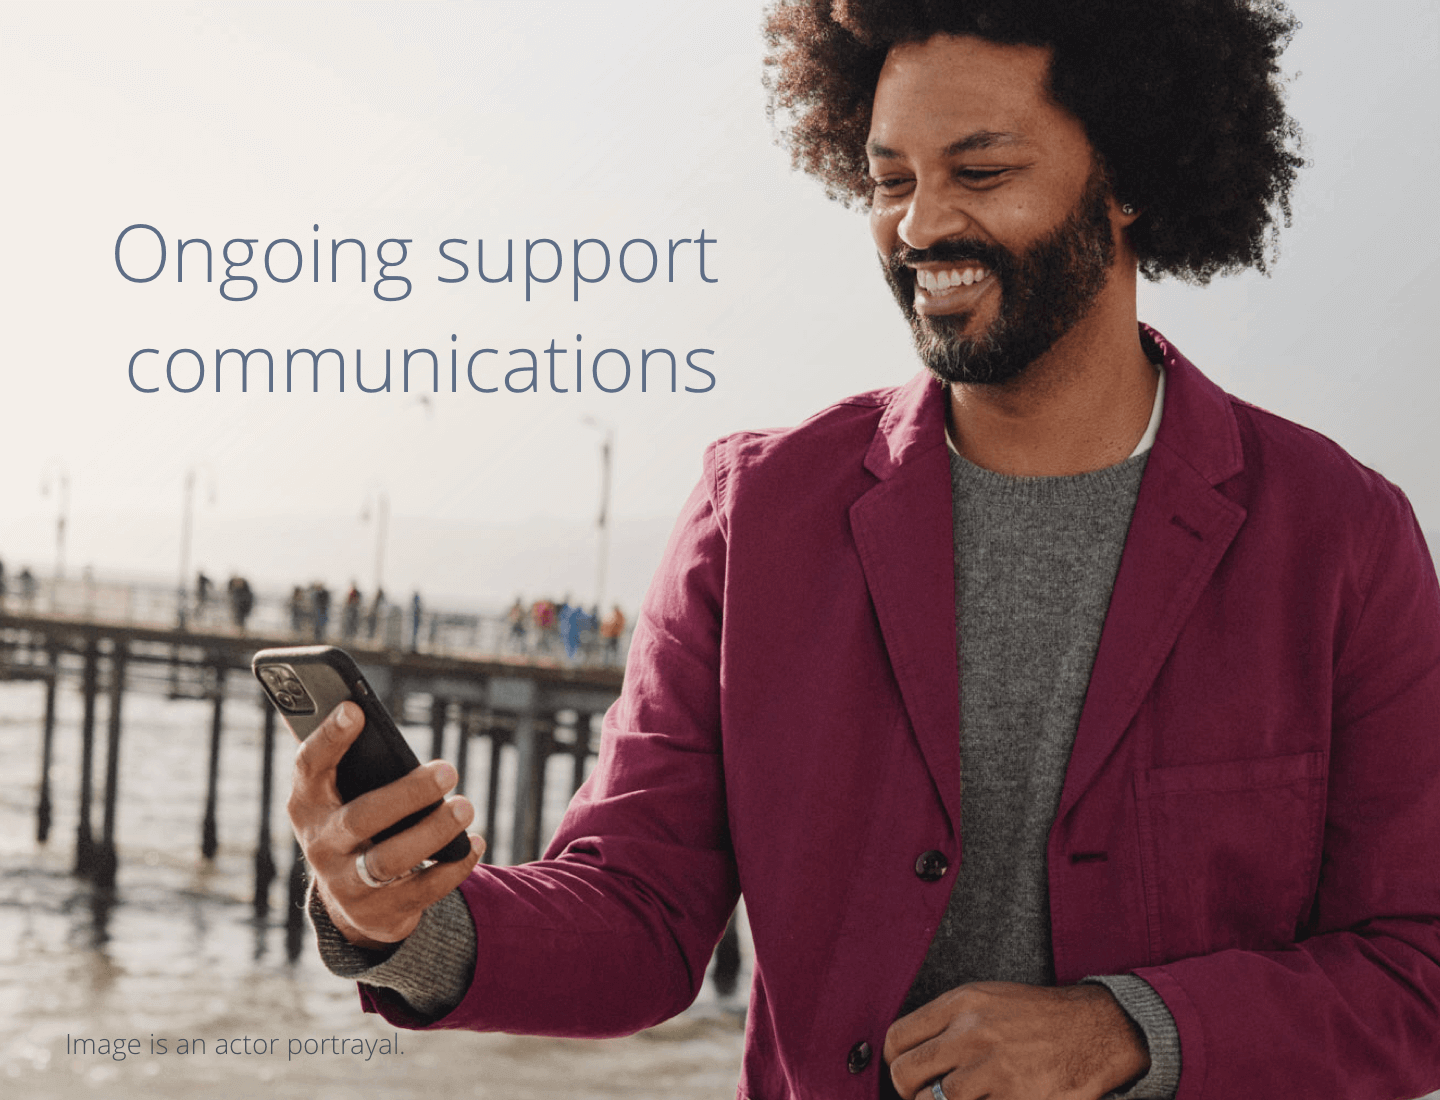 ongoing support communications